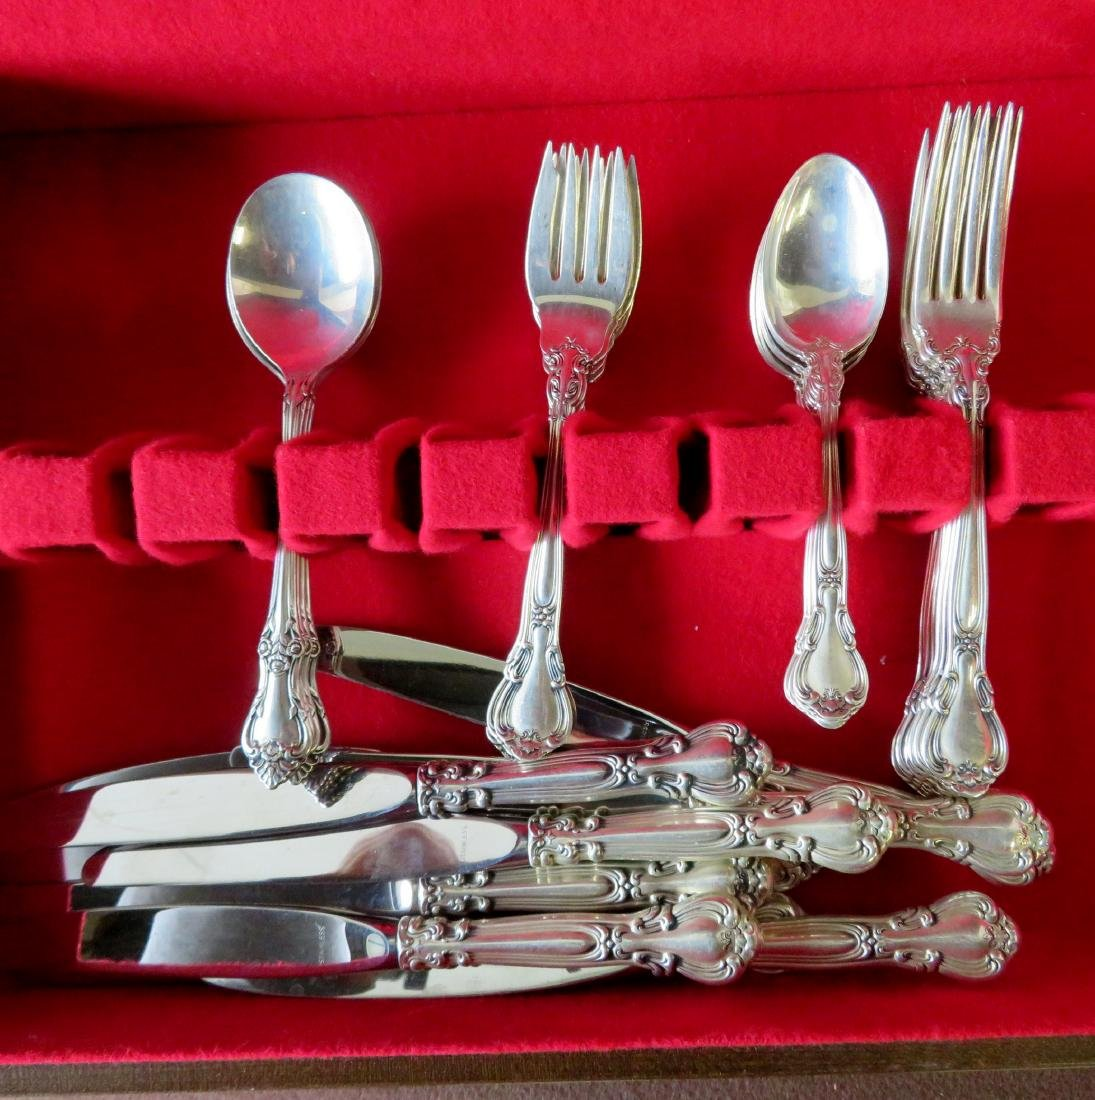 Set of 35 pieces of Gorham sterling flatware in the